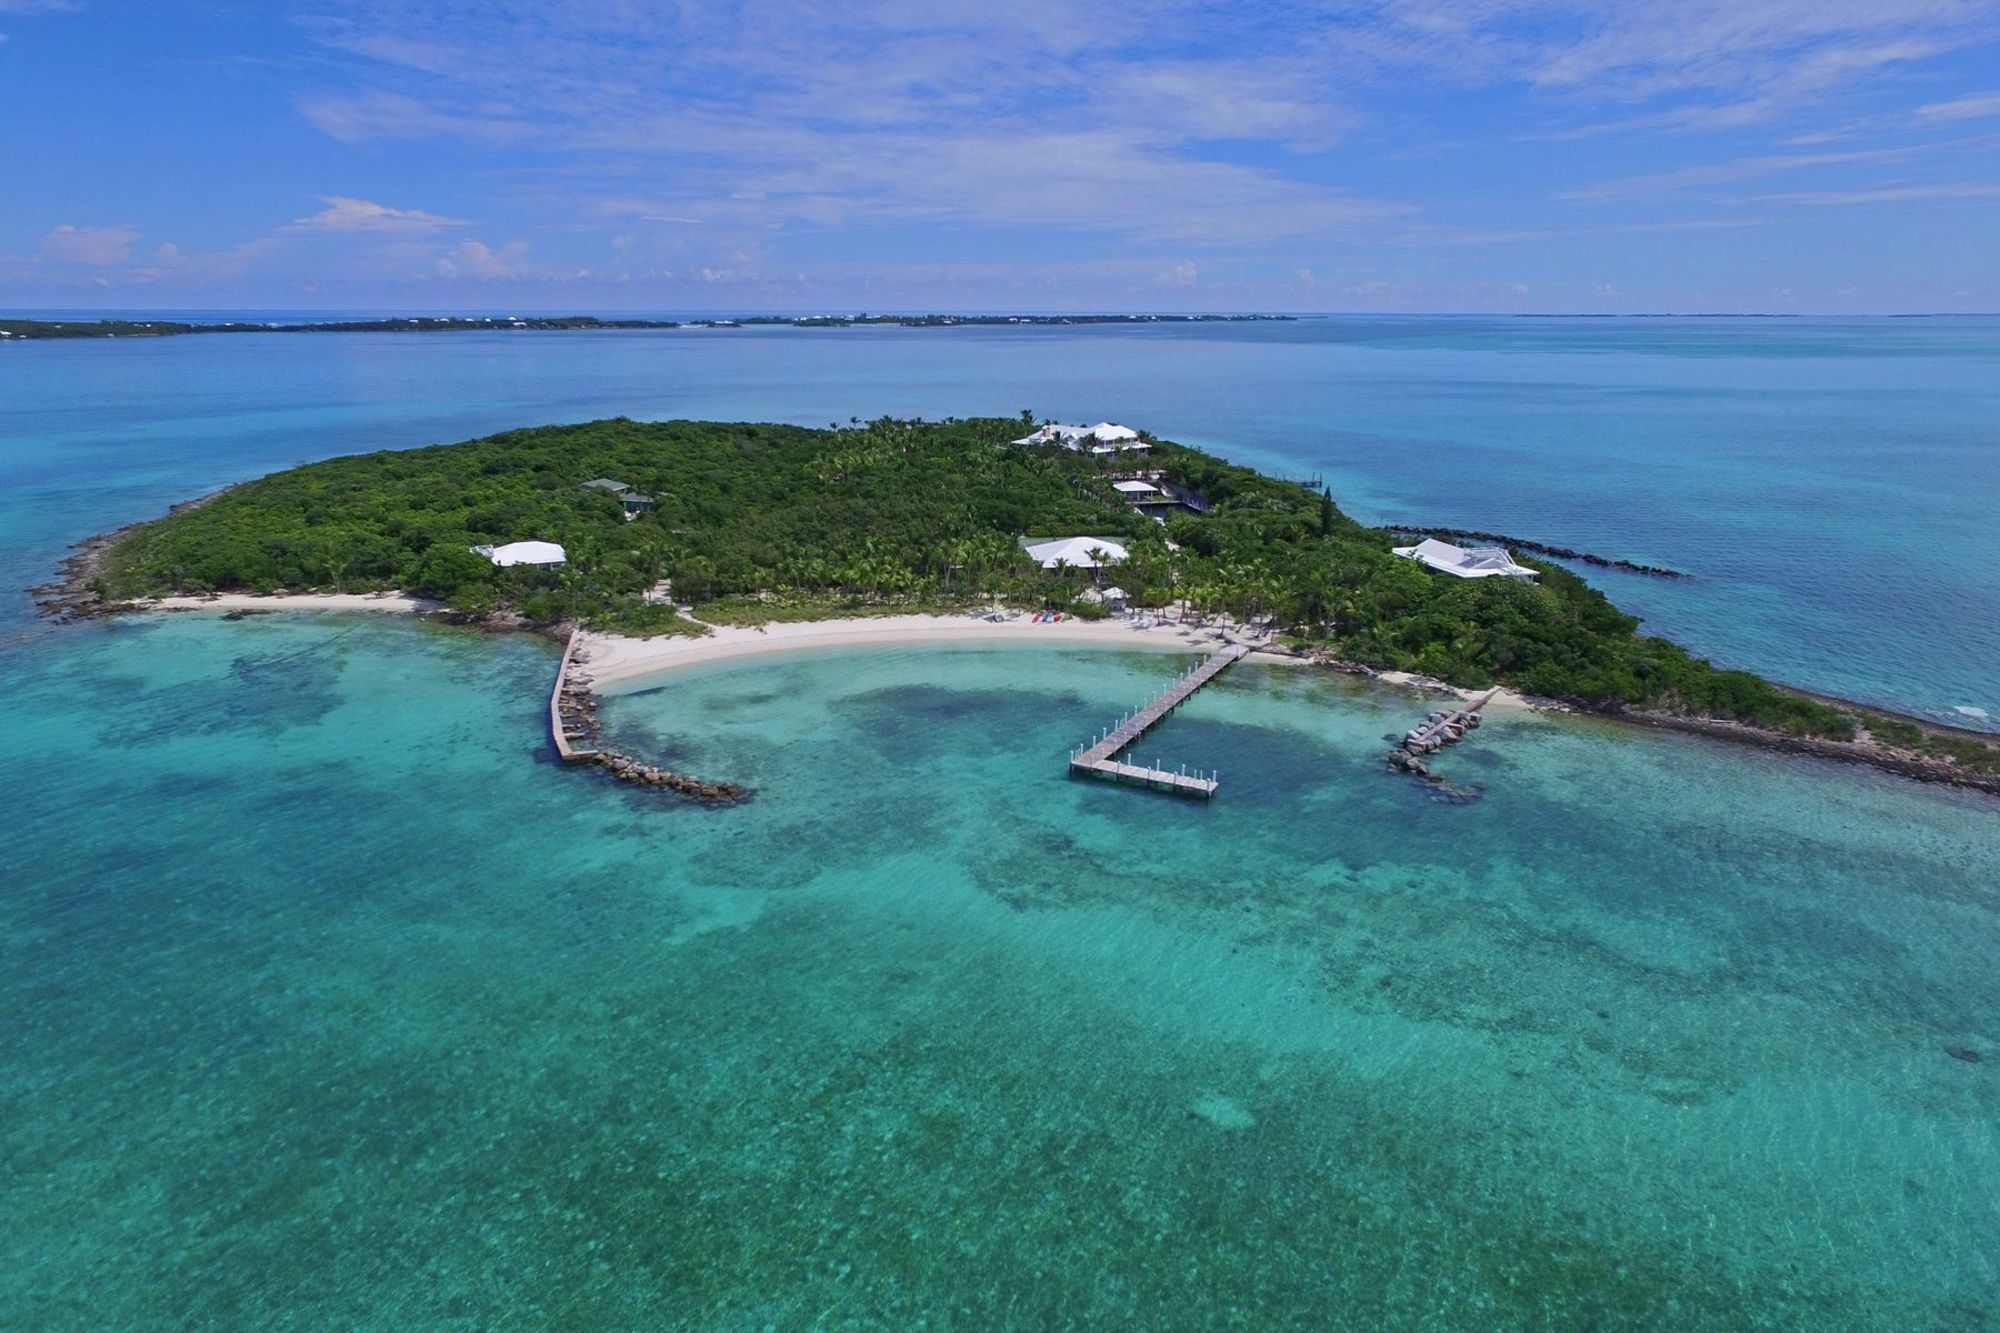 Private island with a beach